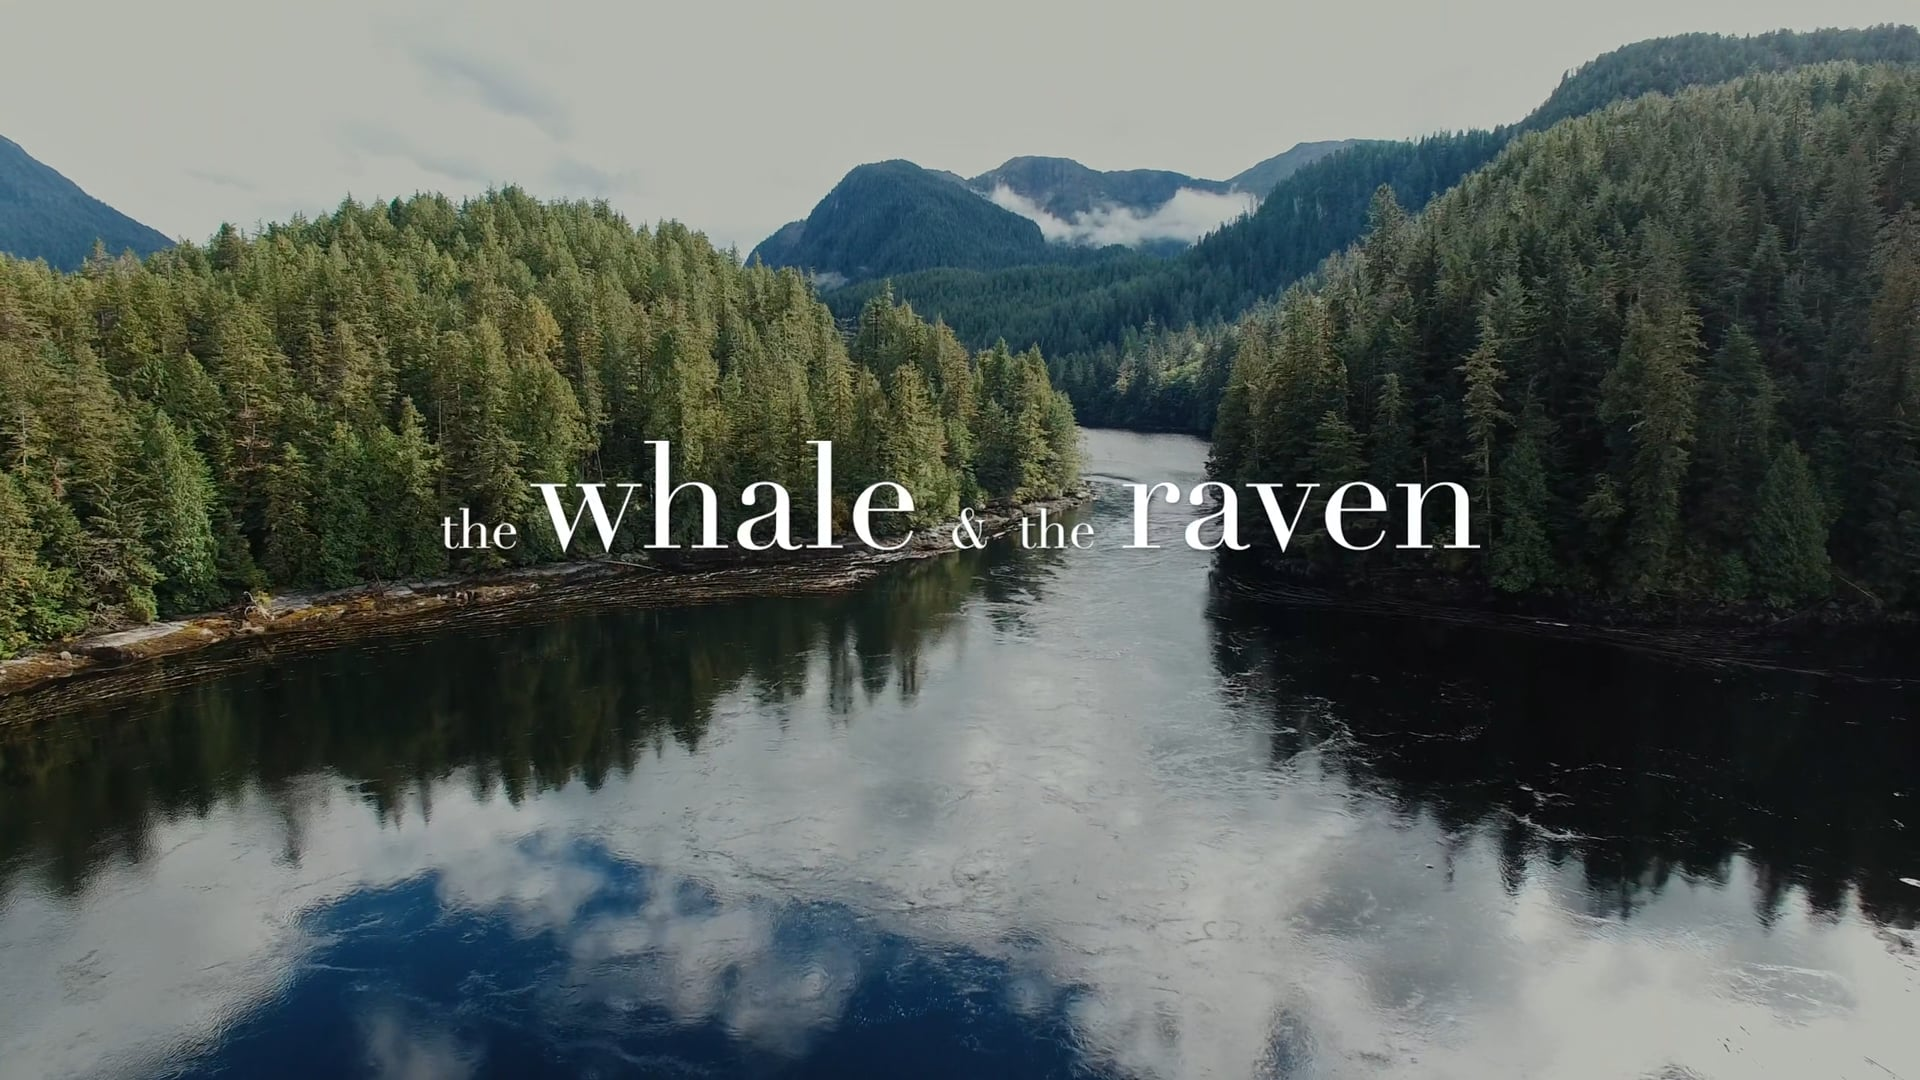 The Whale and the Raven (Trailer)